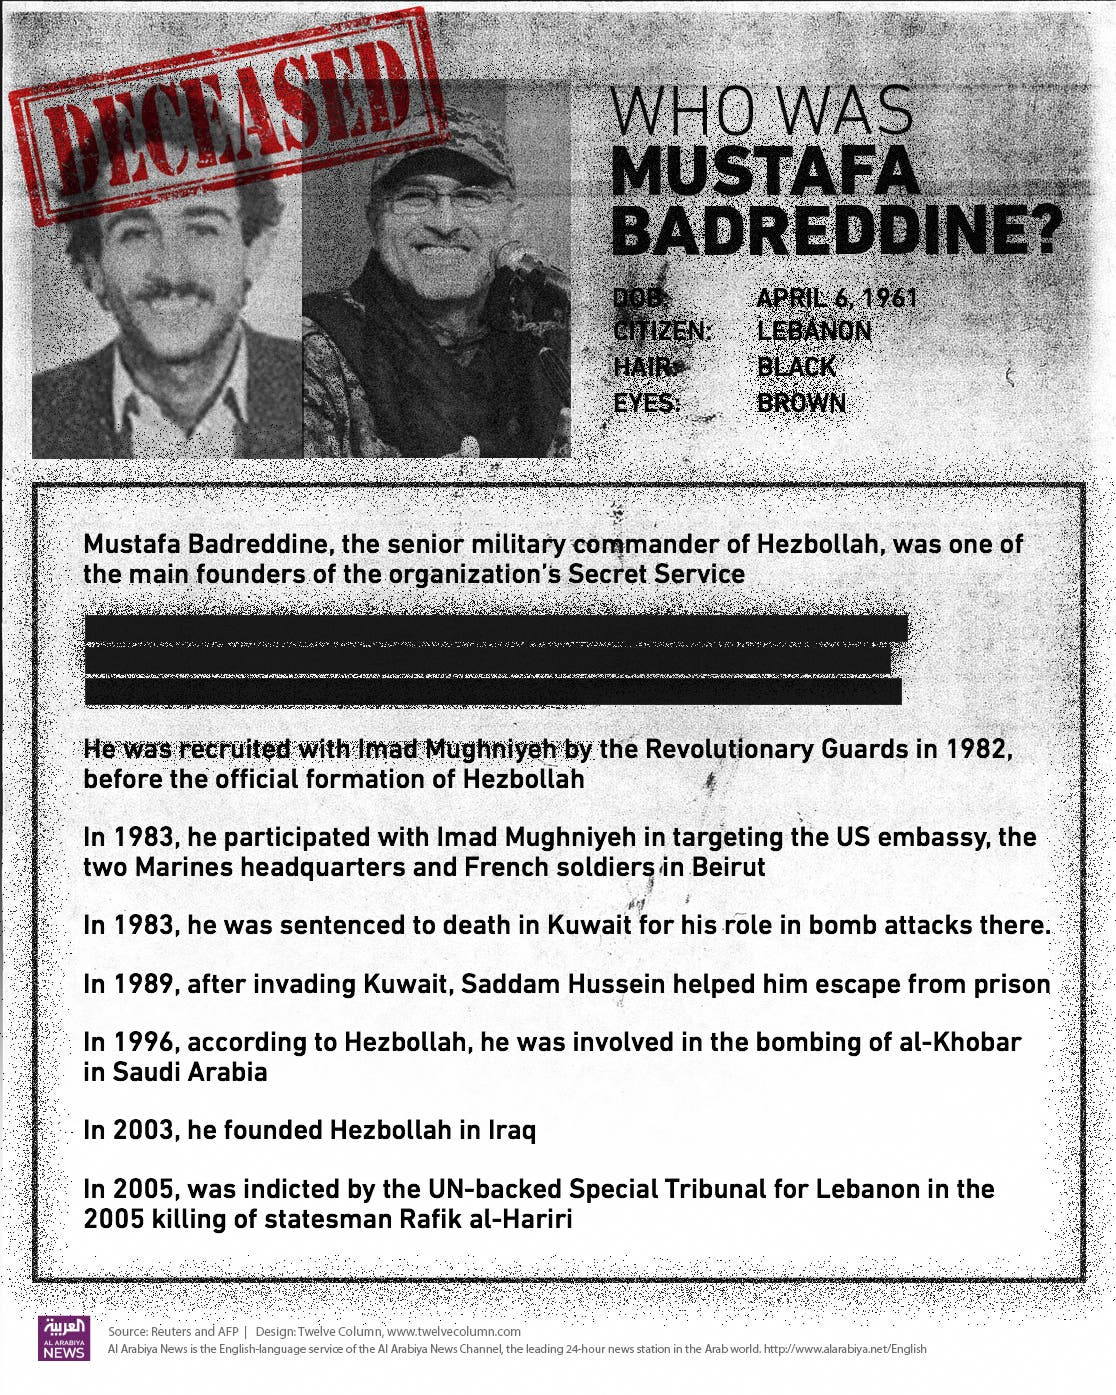 infographic hezbollah mustafa bader eldin Designed by Craig Willers